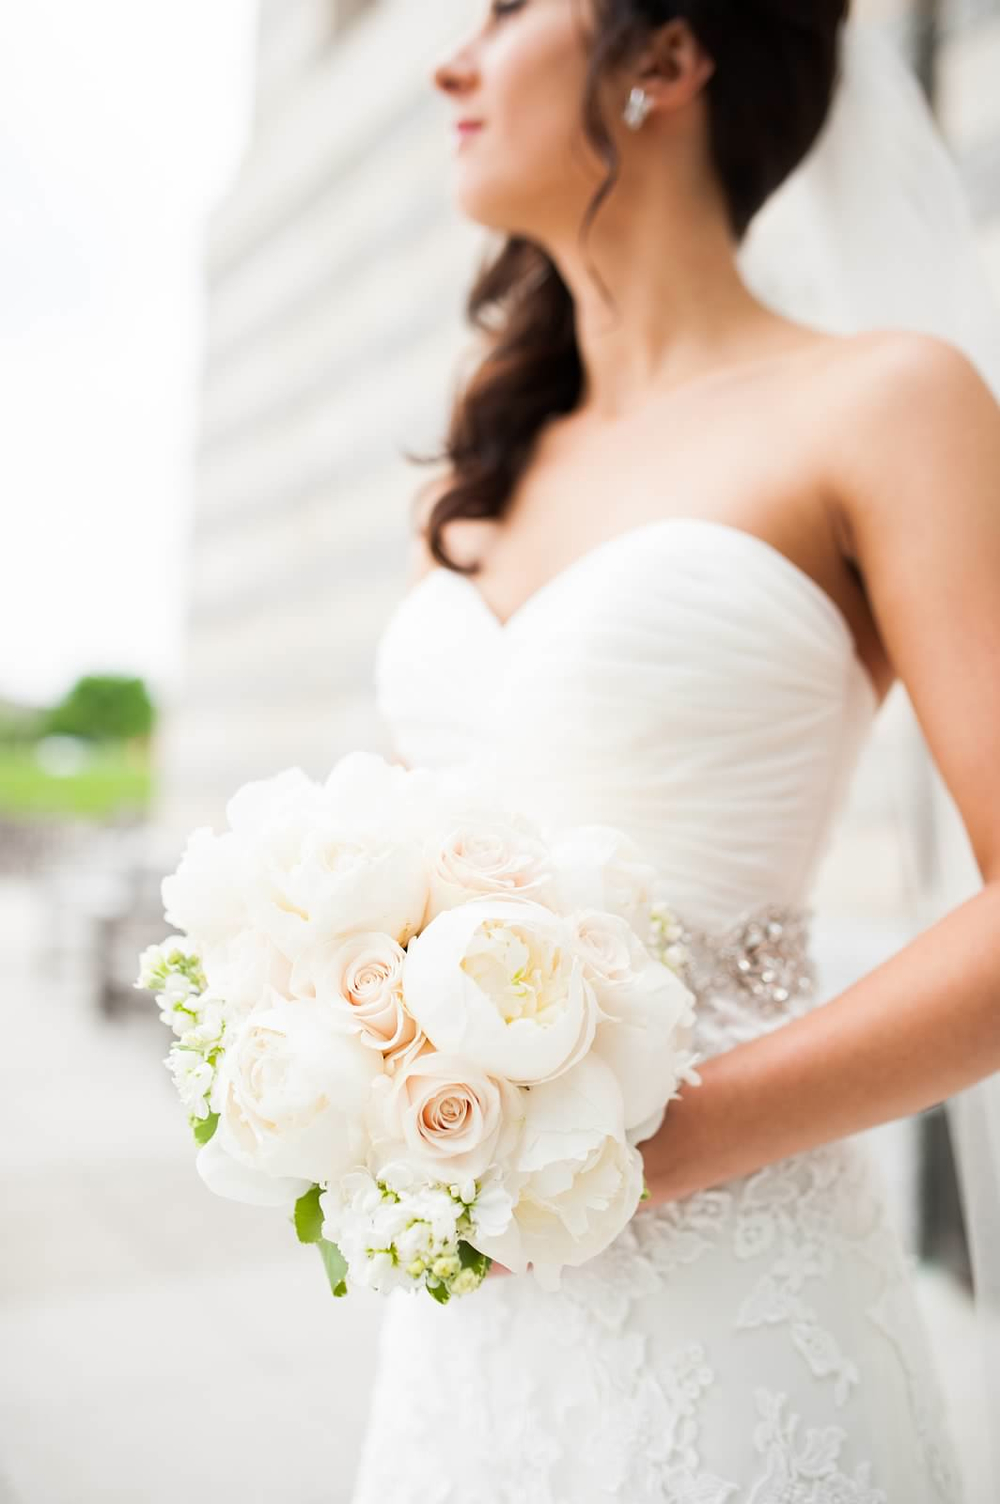 White bridal bouquet with peonies, Vendela and Sahara roses, and white stock 4.jpg